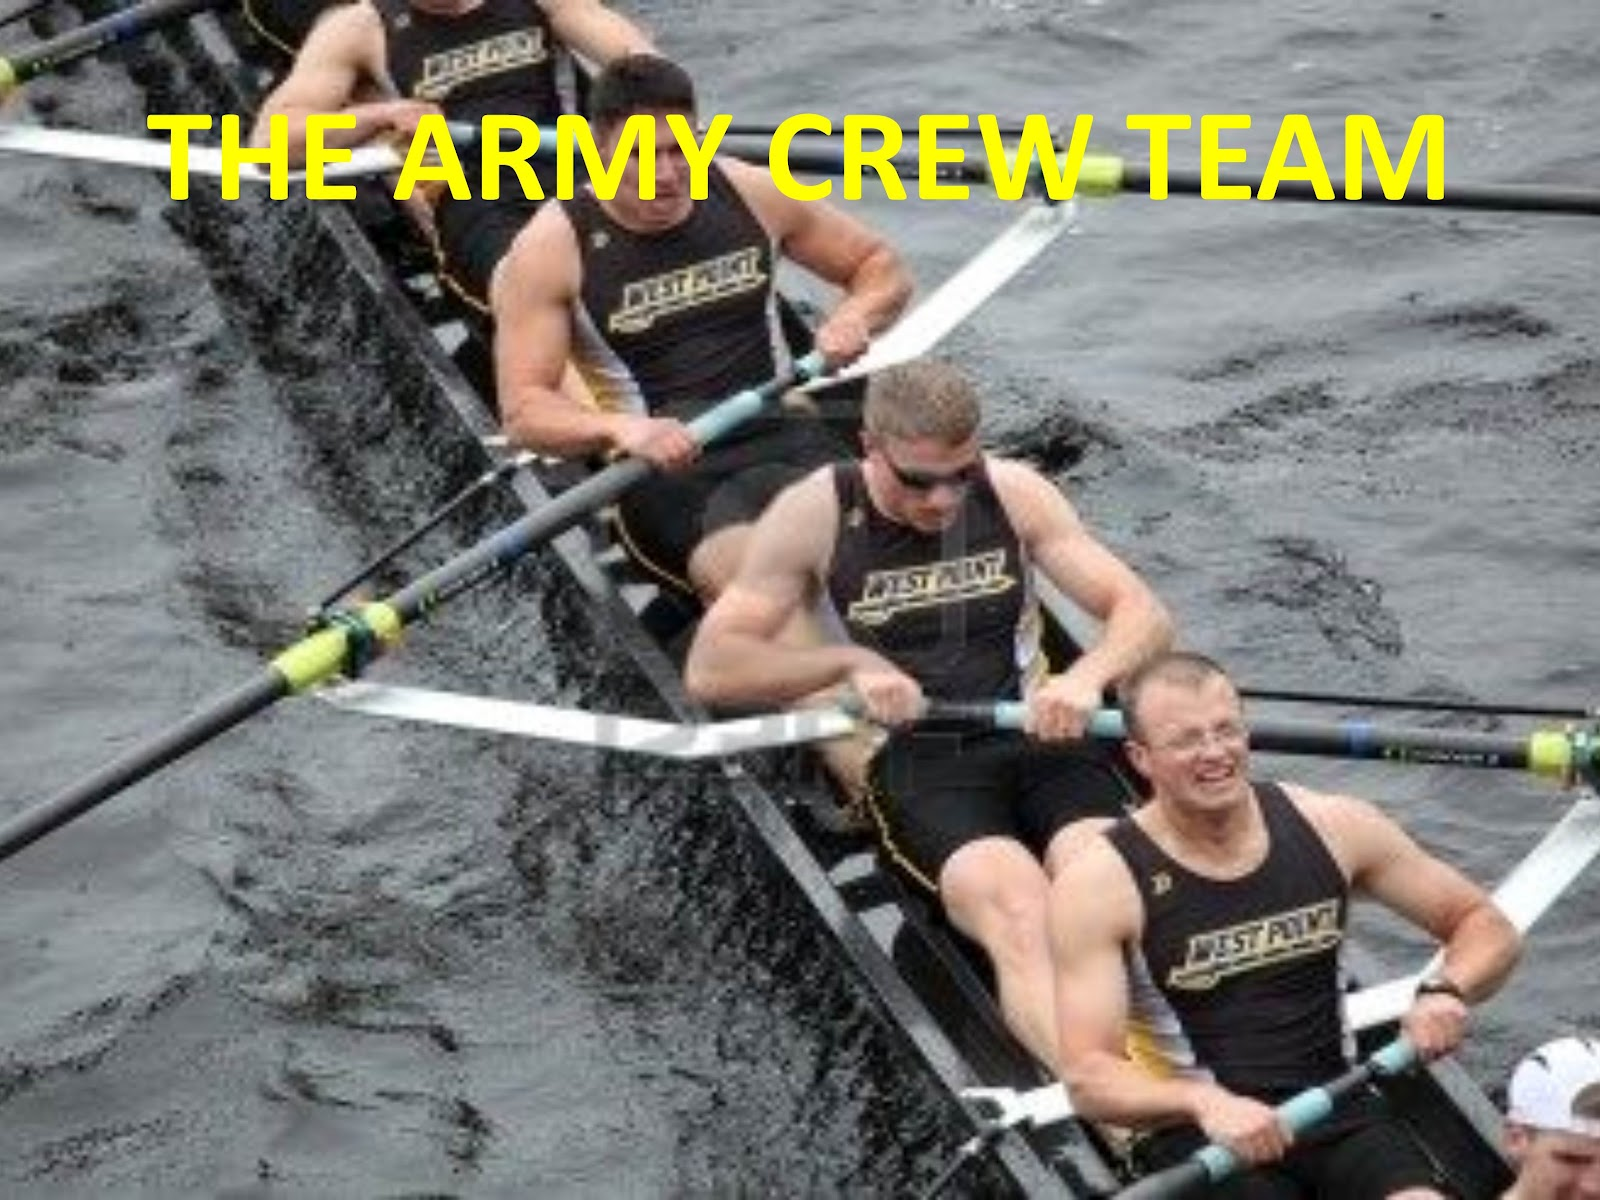 the army crew team case study Army crew team case analysis, army crew team case study solution, army crew team xls file, army crew team excel file, subjects covered coaching conflict leadership performance measurement.